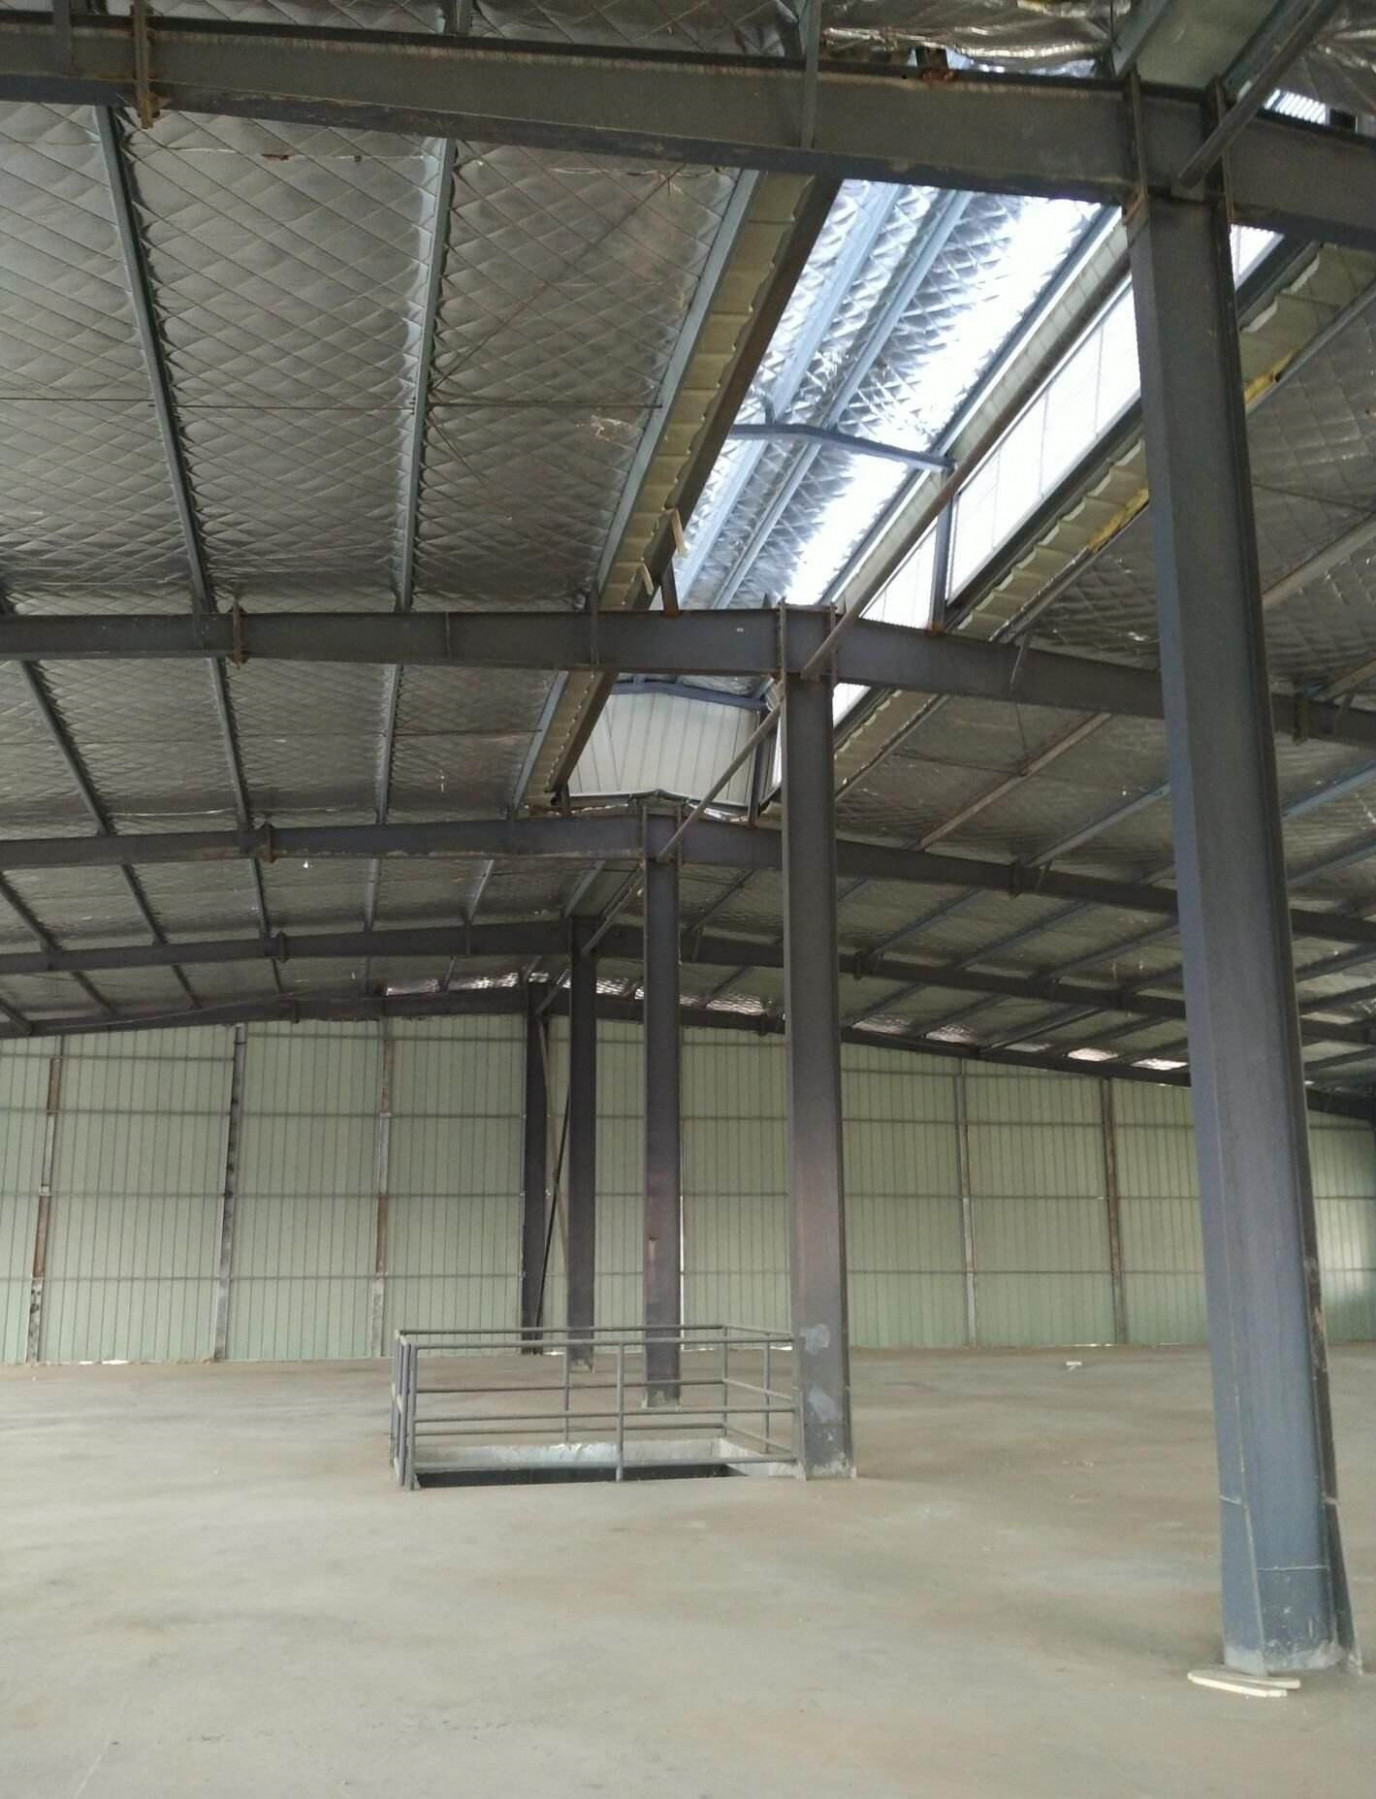 [Hot Item] Gable End Wall Prefabricated Engineered Steel Structure Frame Logistics Center / Carport / Garage Carport Garage Metal